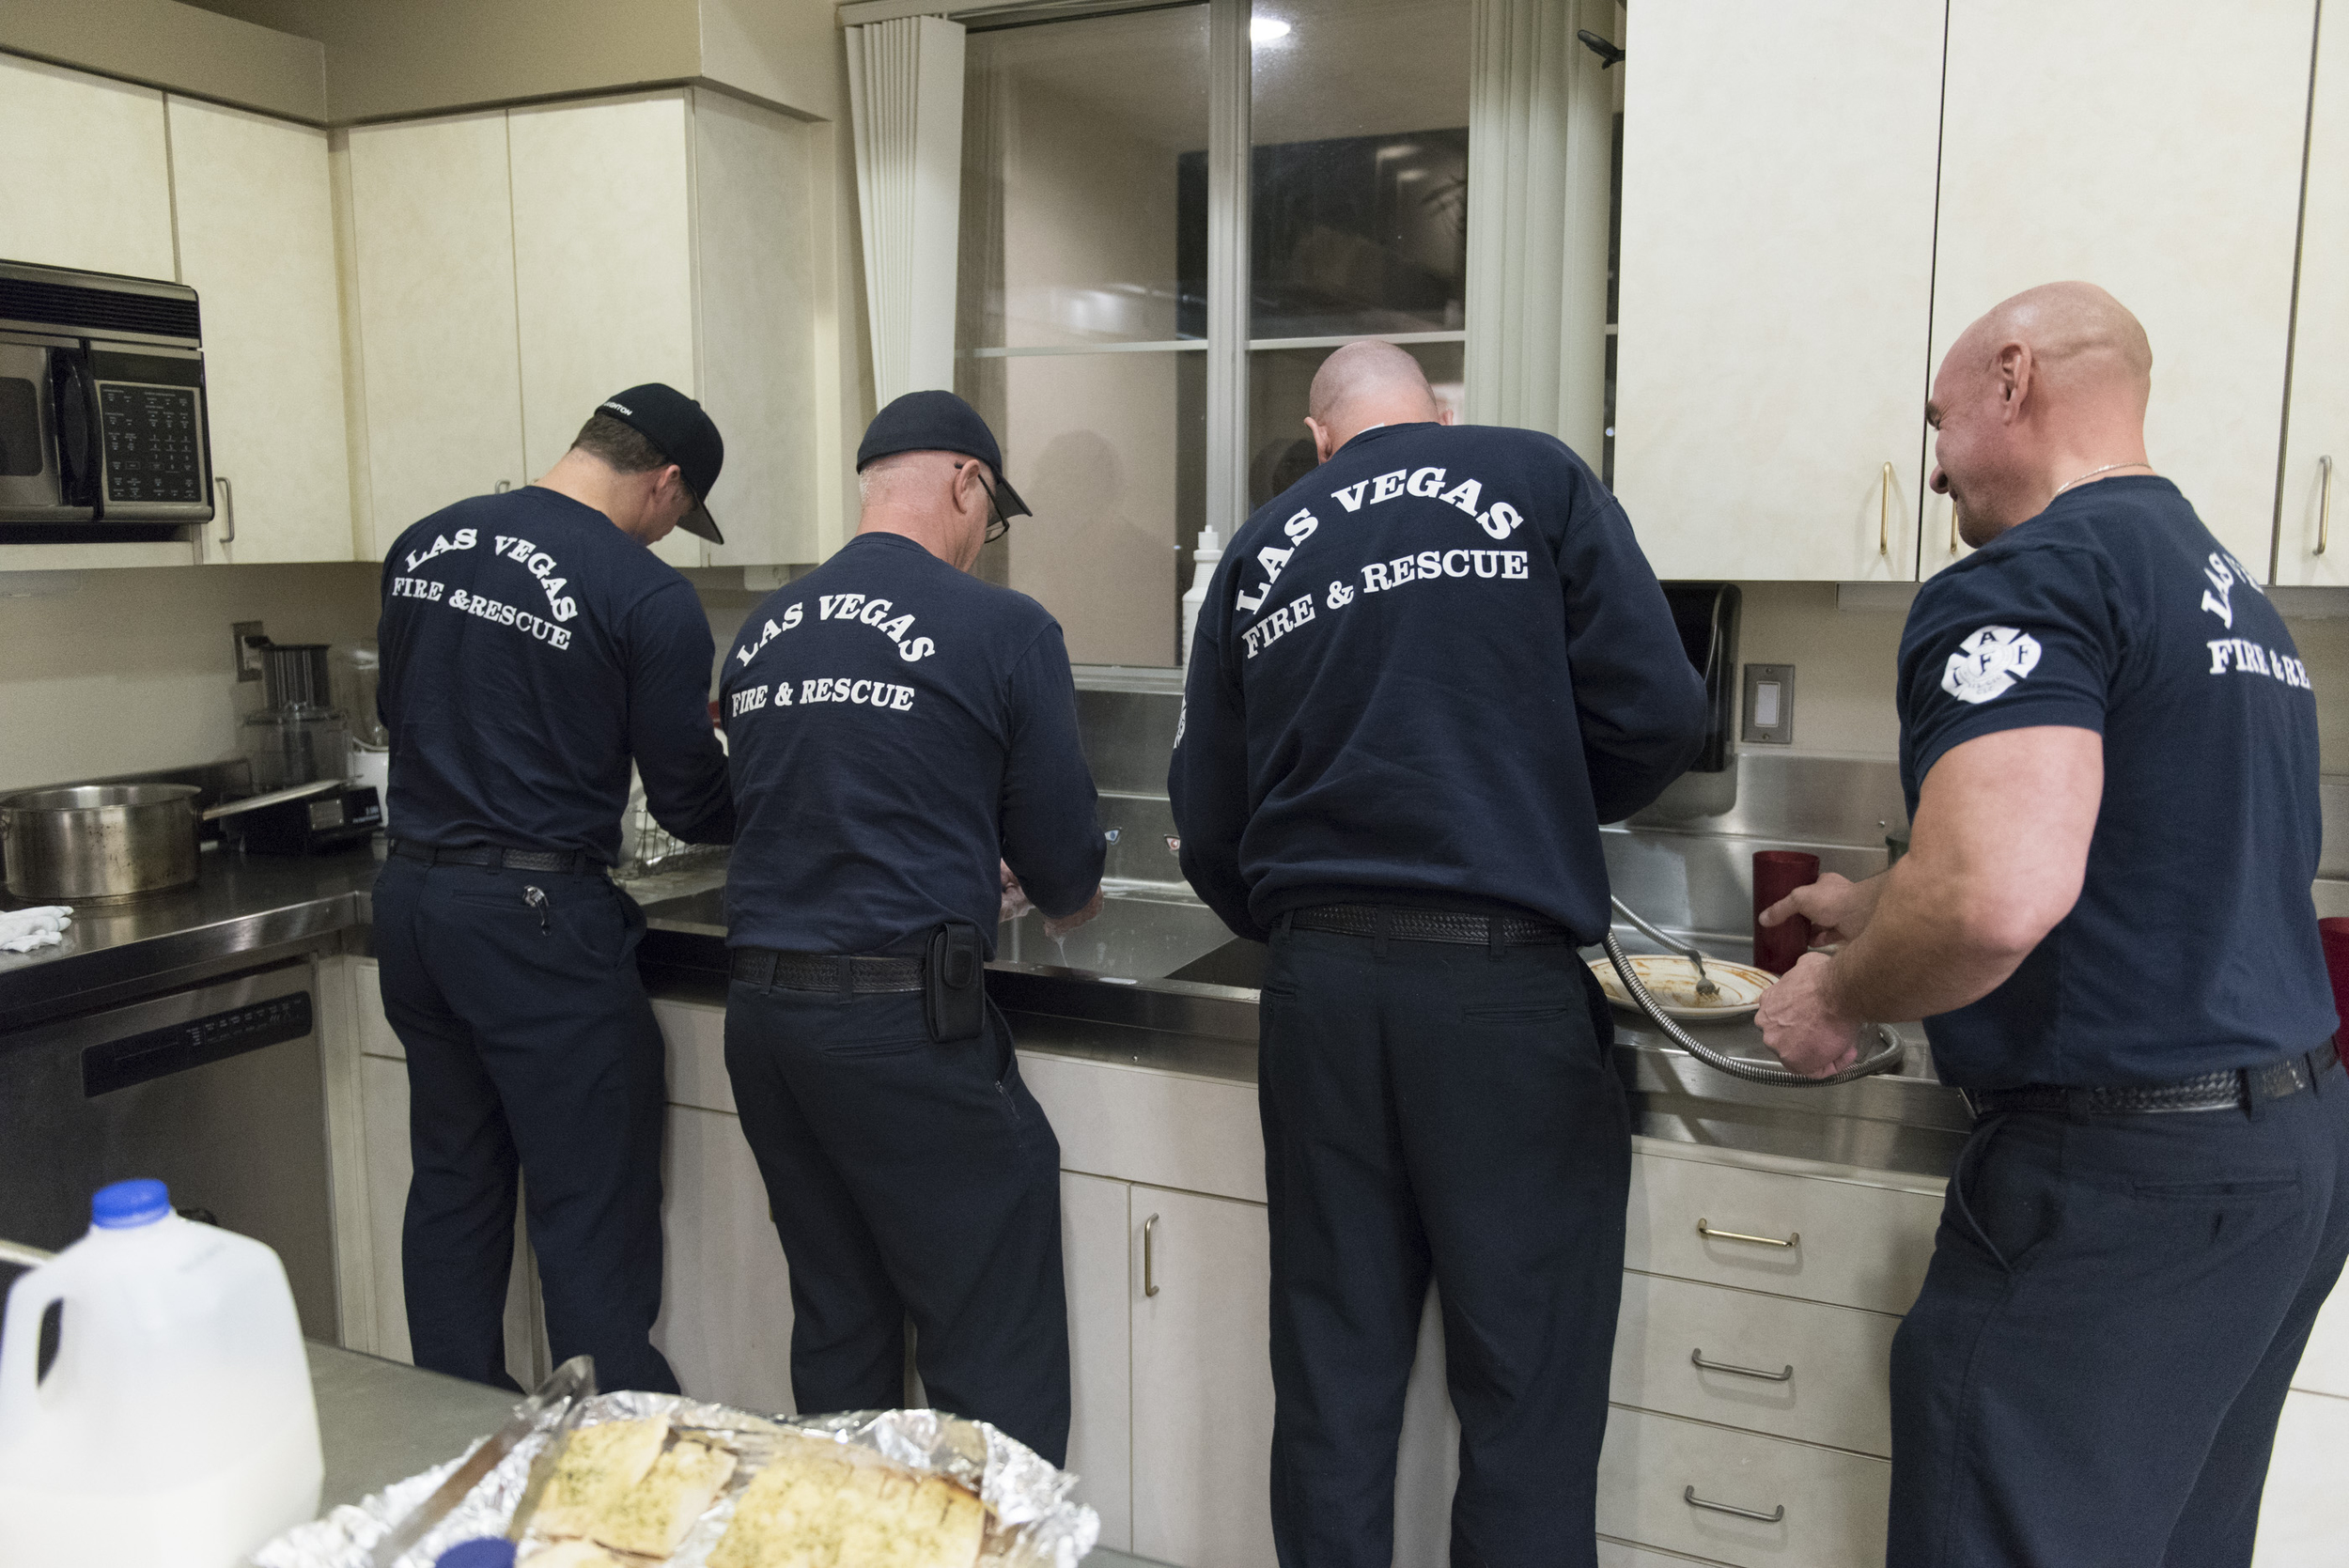 The crew washes dishes used during dinner at Las Vegas Fire & Rescue's Fire Station 41 in Las Vegas Monday, Jan. 11, 2016. Jason Ogulnik/Las Vegas Review-Journal